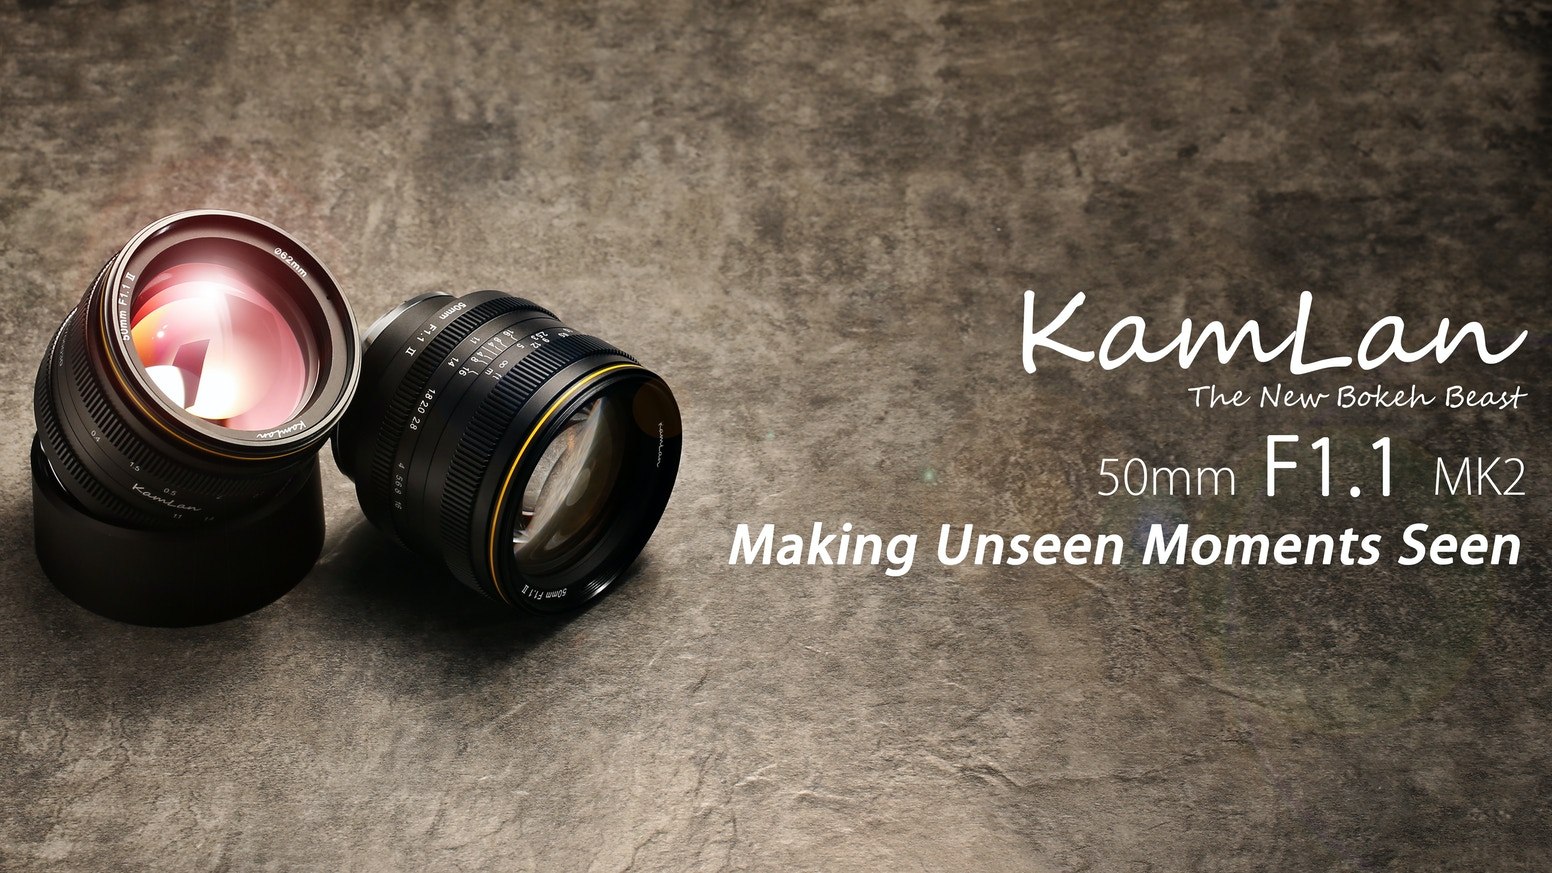 The new Bokeh Beast - Making unseen moments seen with Kamlan 50mm F1.1 MK2